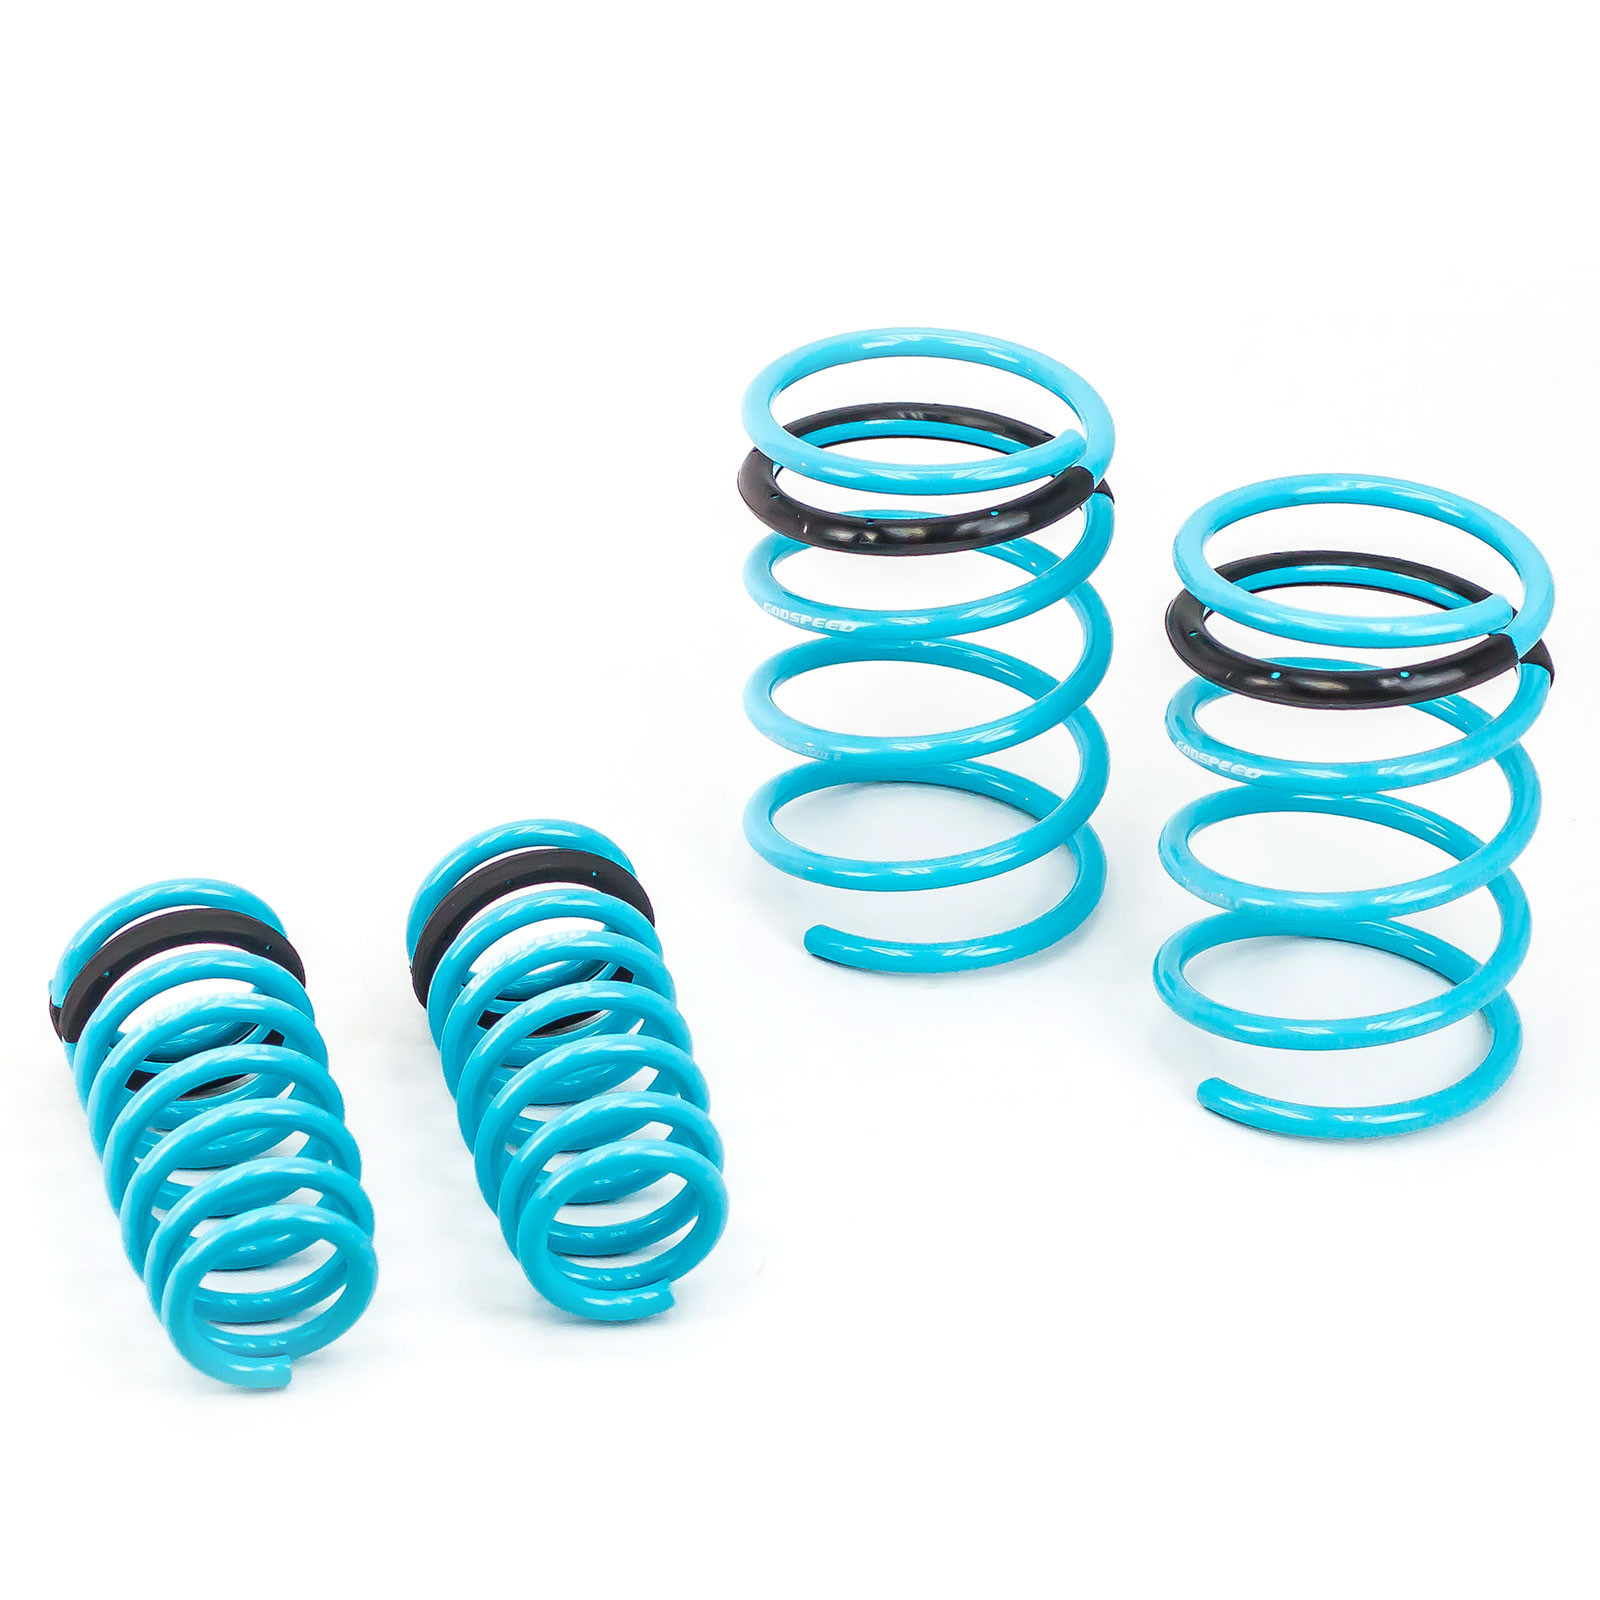 Godspeed Lowering Springs For Acura RSX Godspeed Project - Acura rsx lowering springs